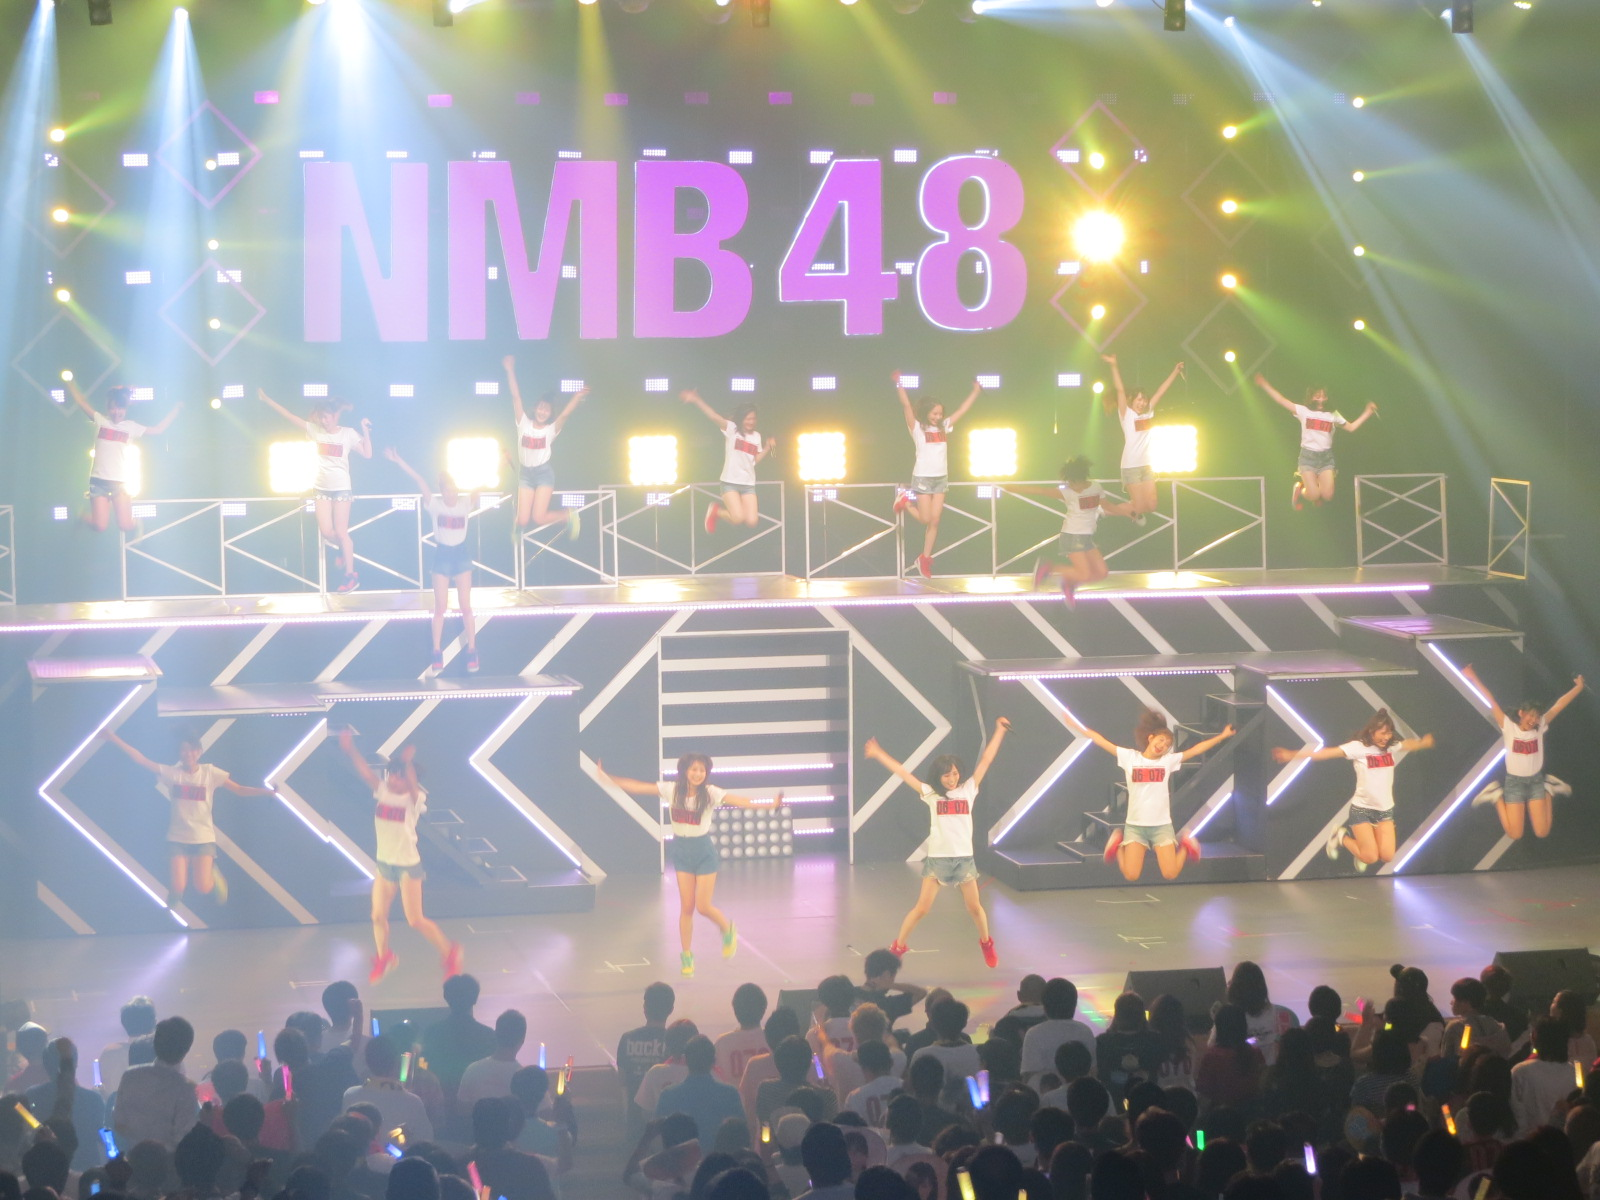 NMB48 LIVE TOUR 2018 in Summer・石川公演の画像-124